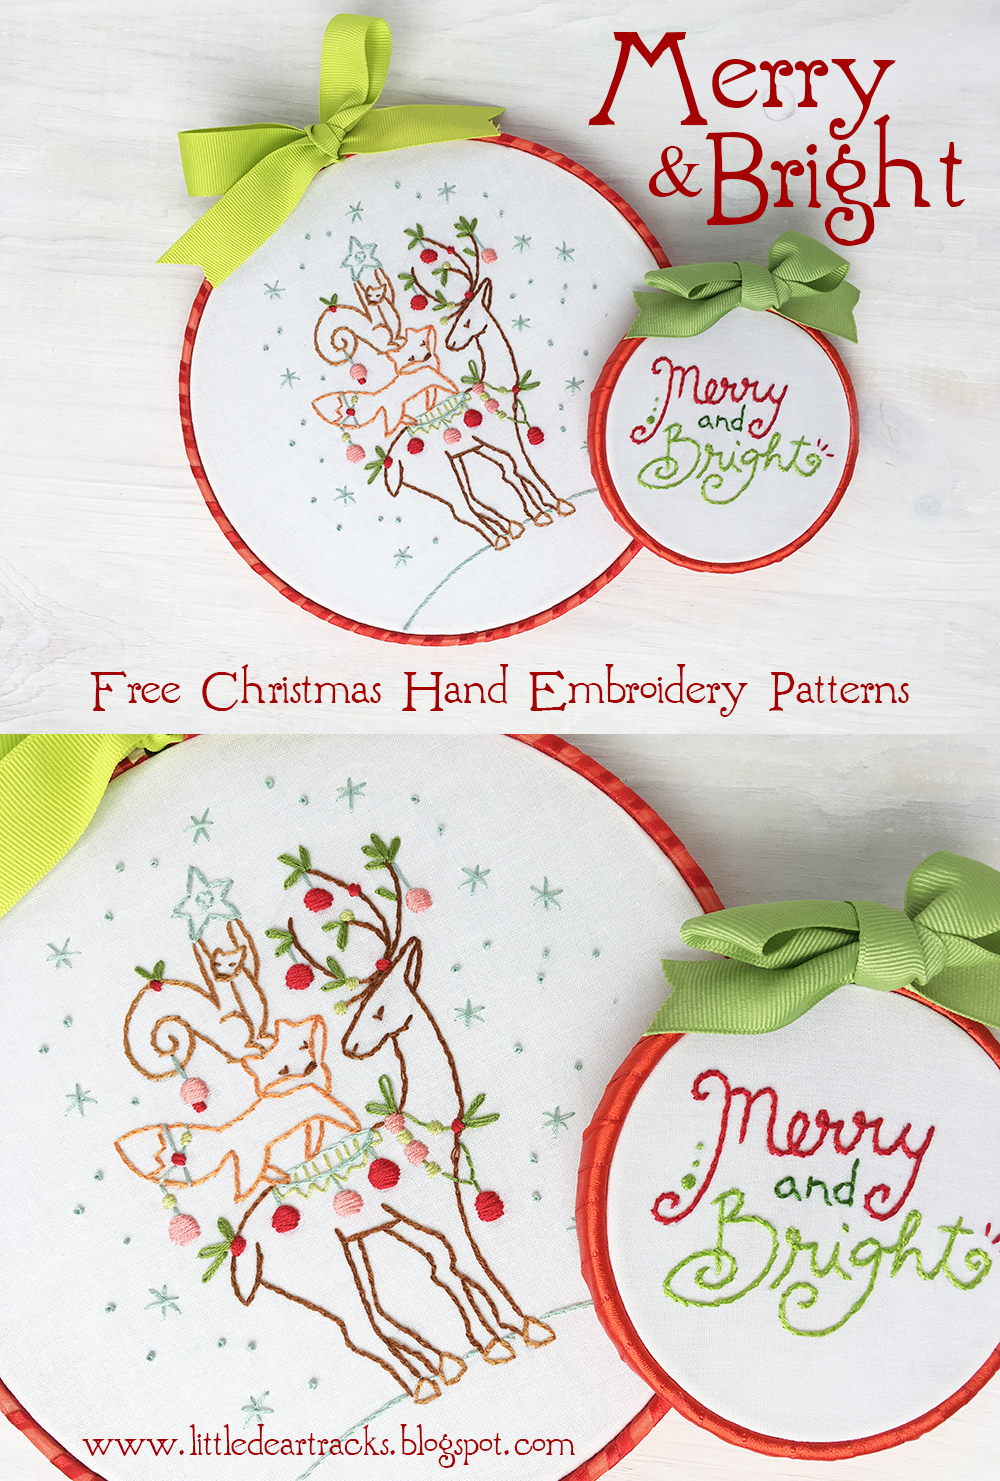 Christmas Embroidery Patterns Free.Little Dear Tracks Free Christmas Embroidery Patterns